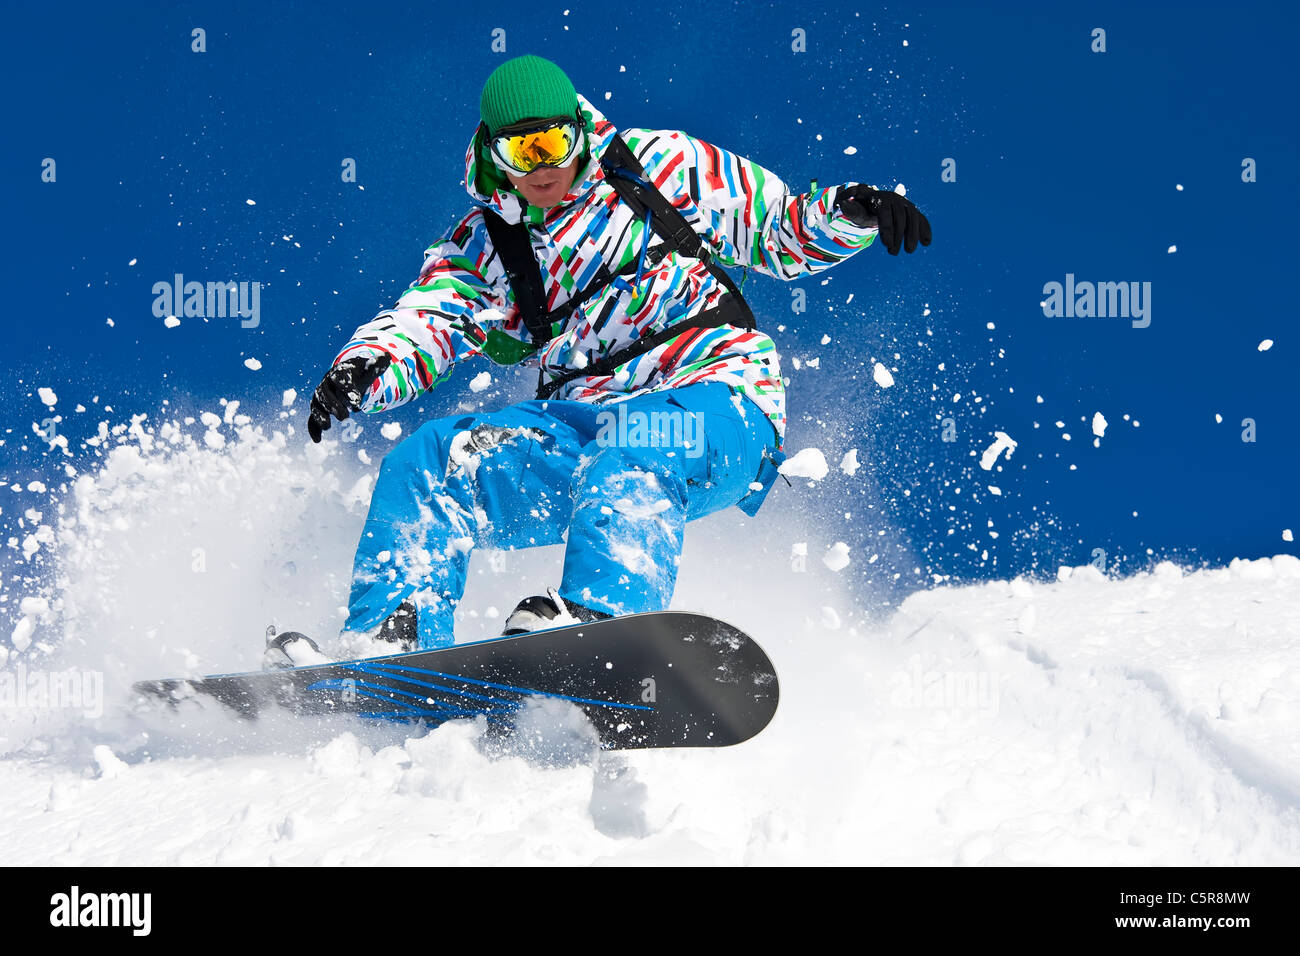 A snowboarder riding hard through off piste snow. - Stock Image